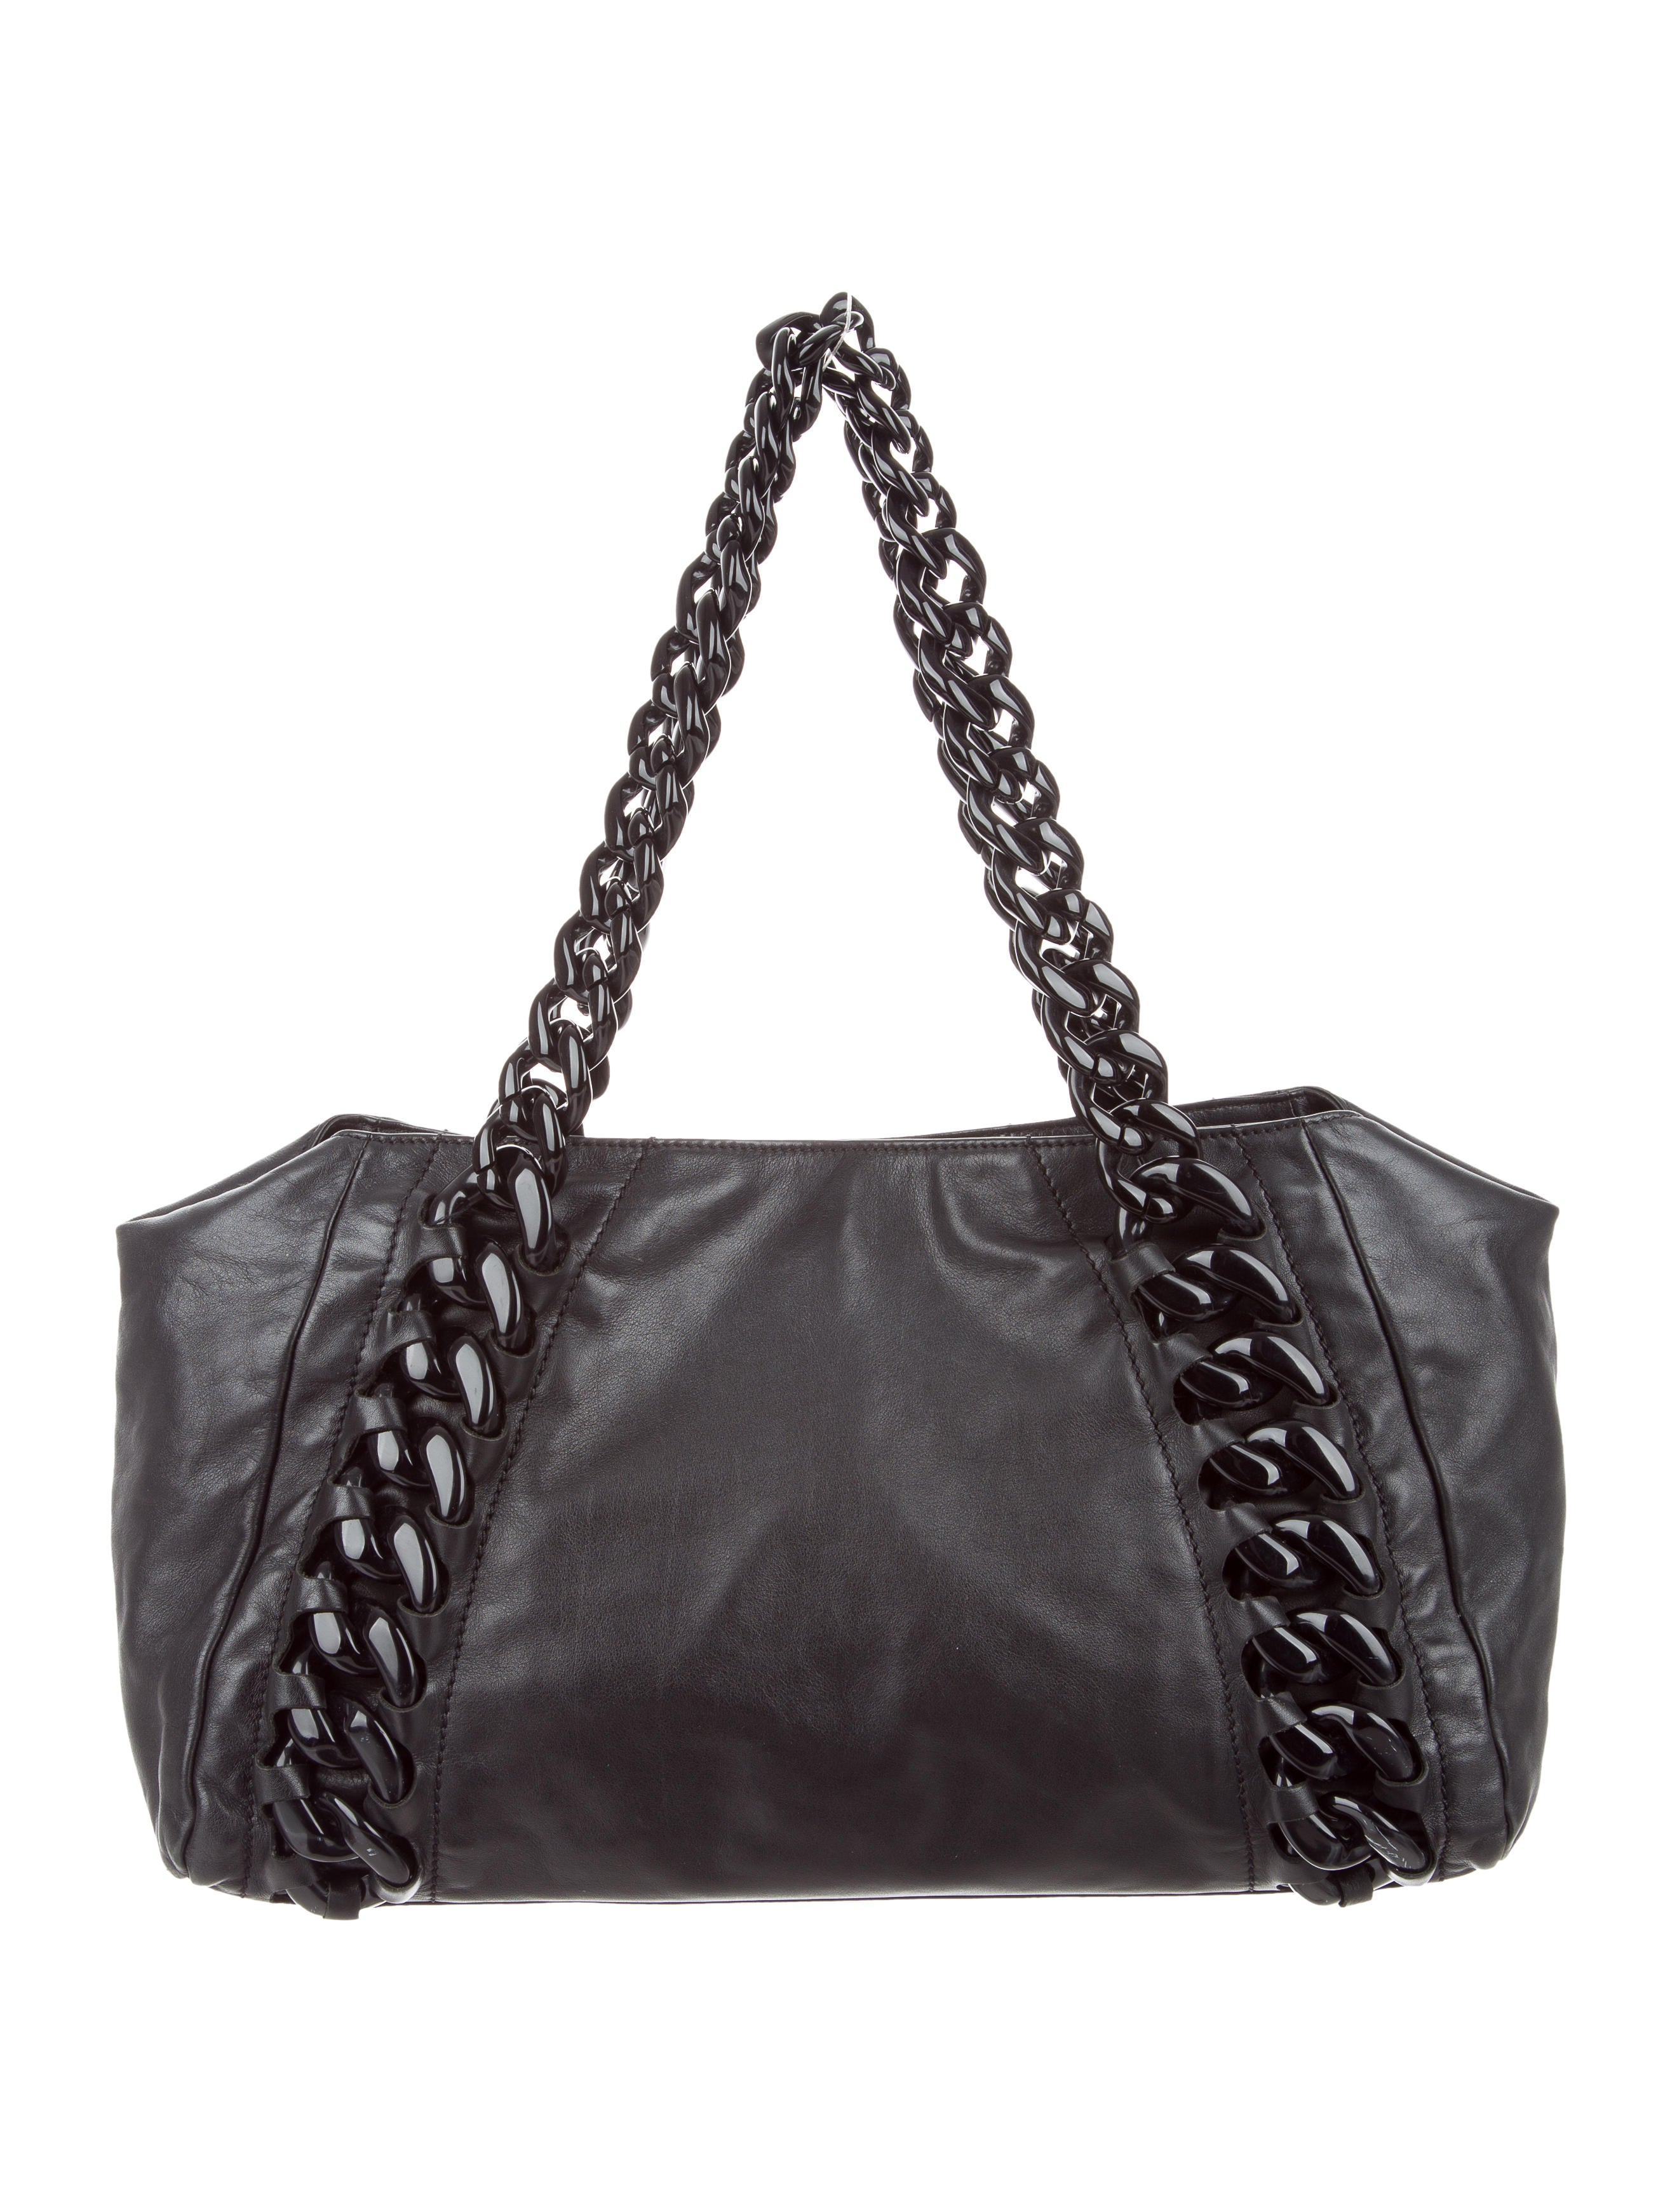 27acd0b80e4c13 Chanel Modern Chain Tote Bag | Stanford Center for Opportunity ...